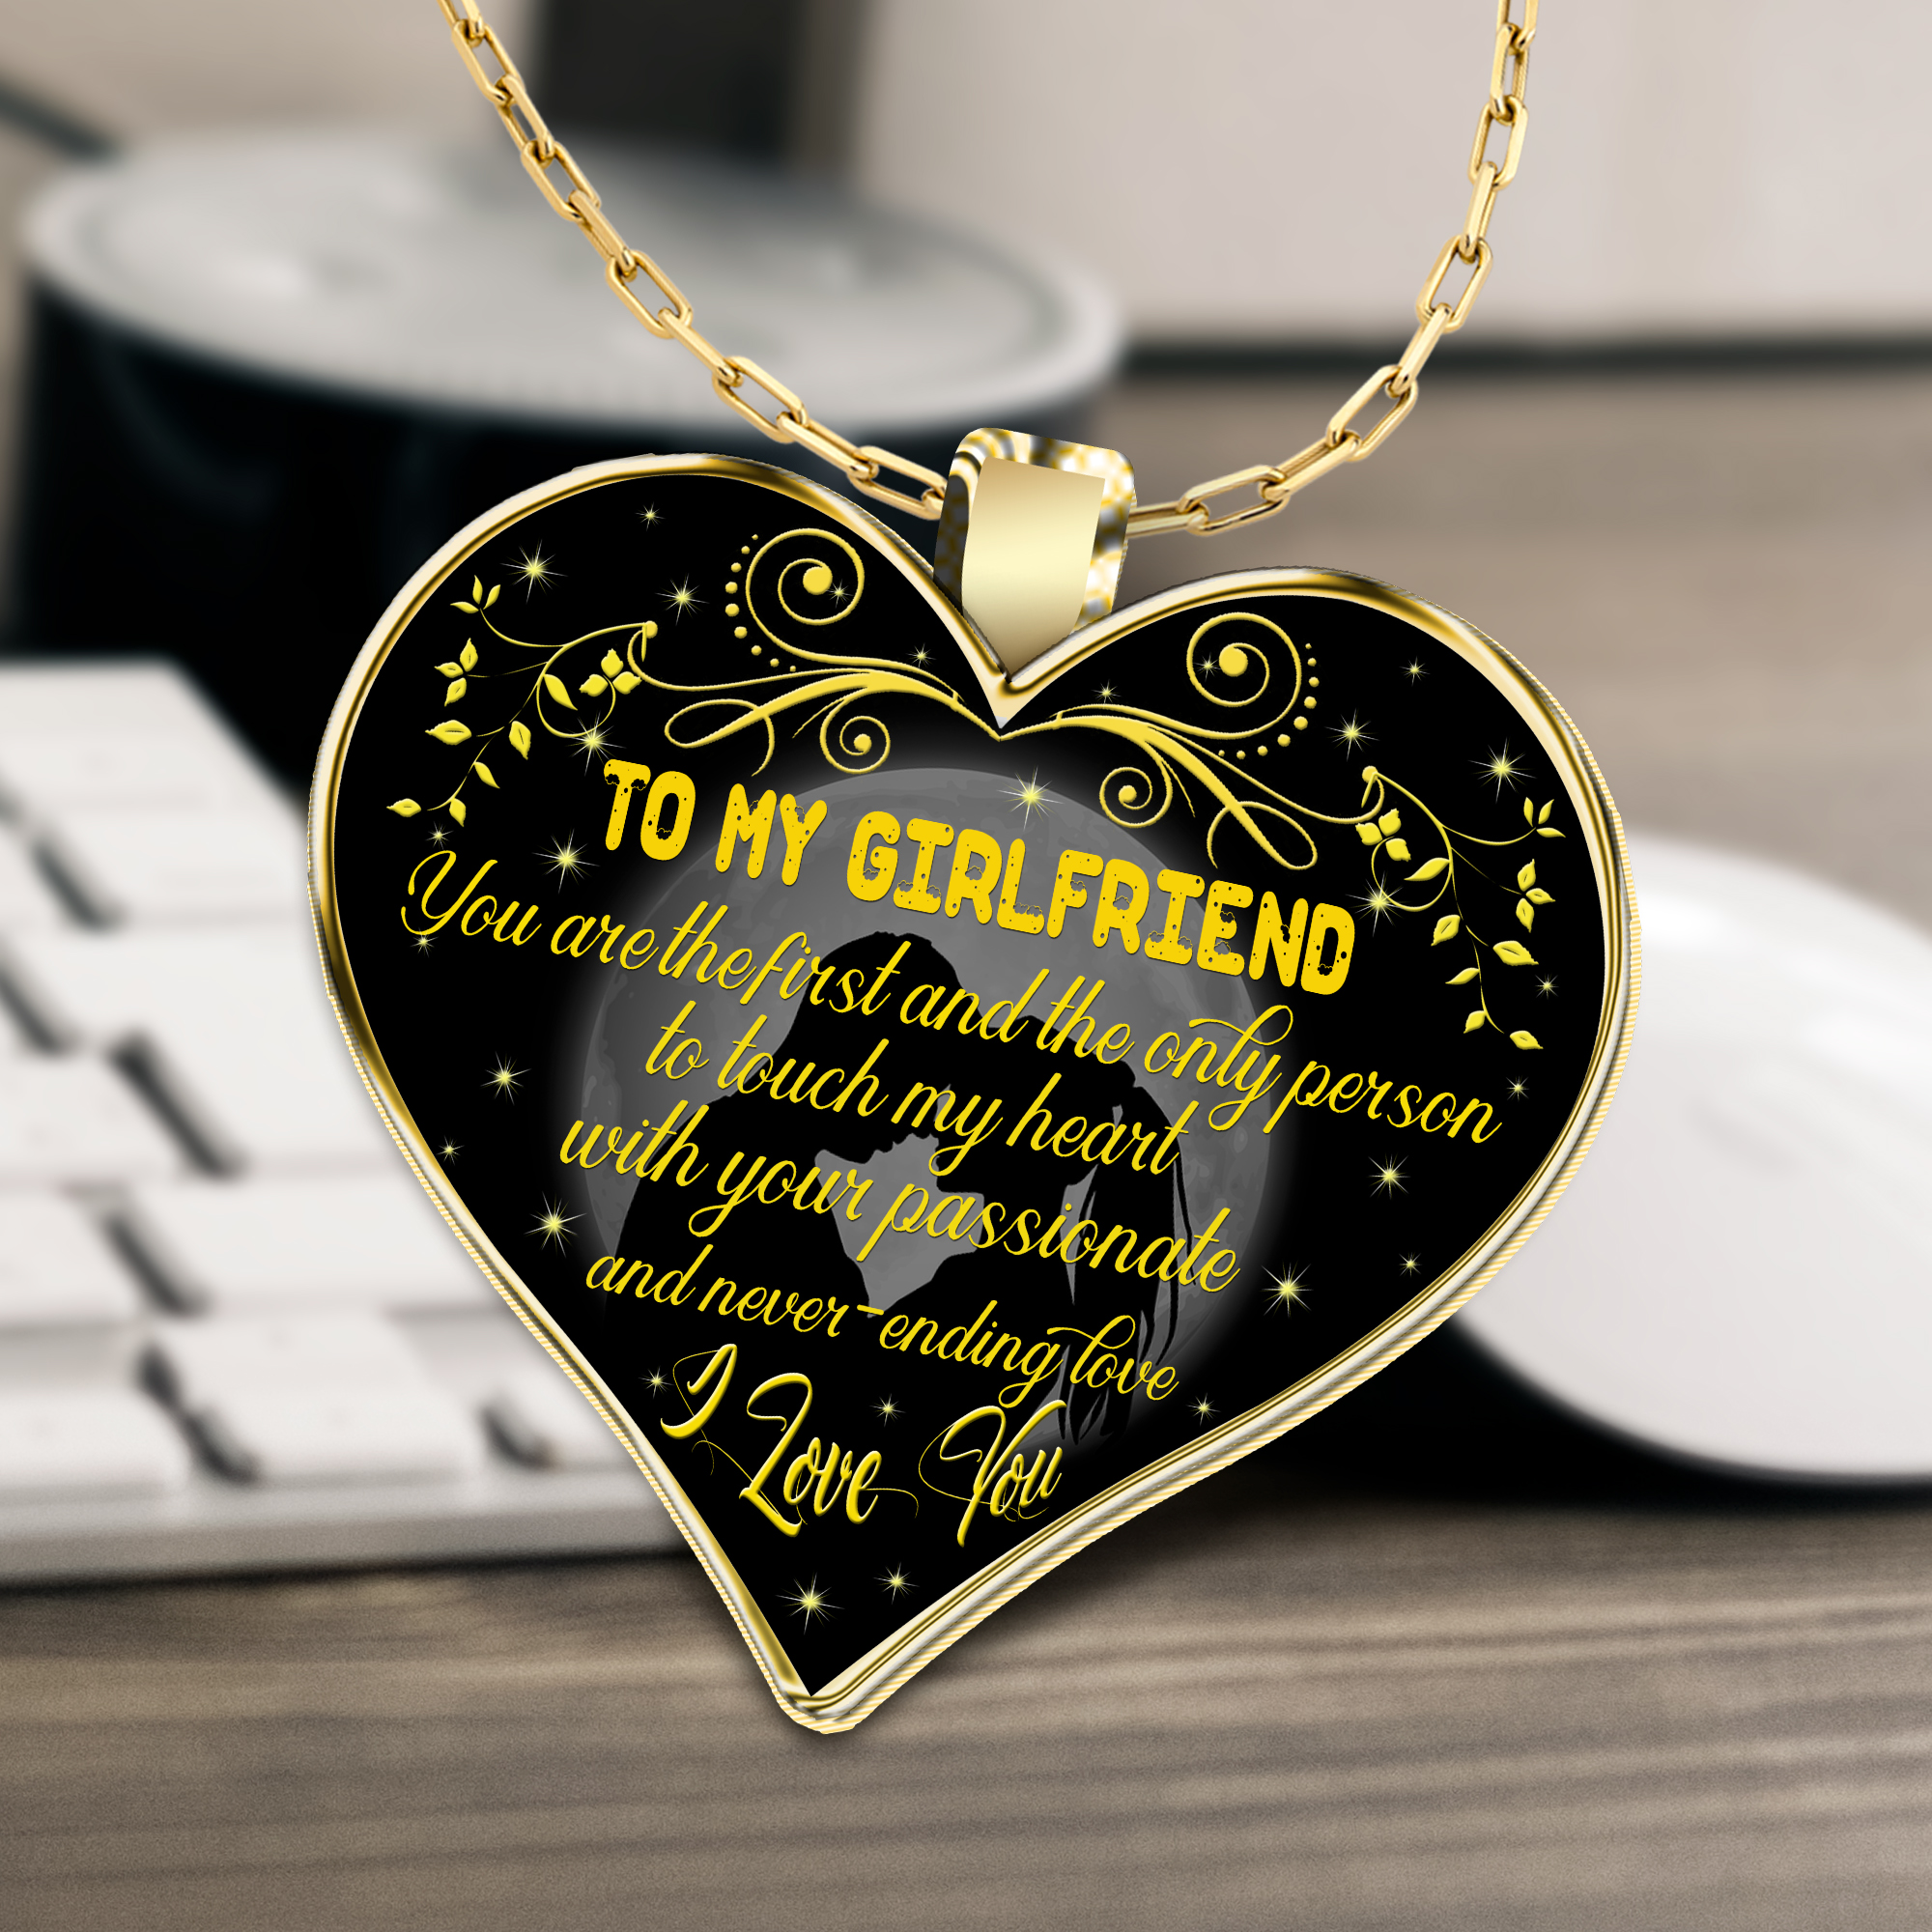 To My Girlfriend Necklace Best Gifts For